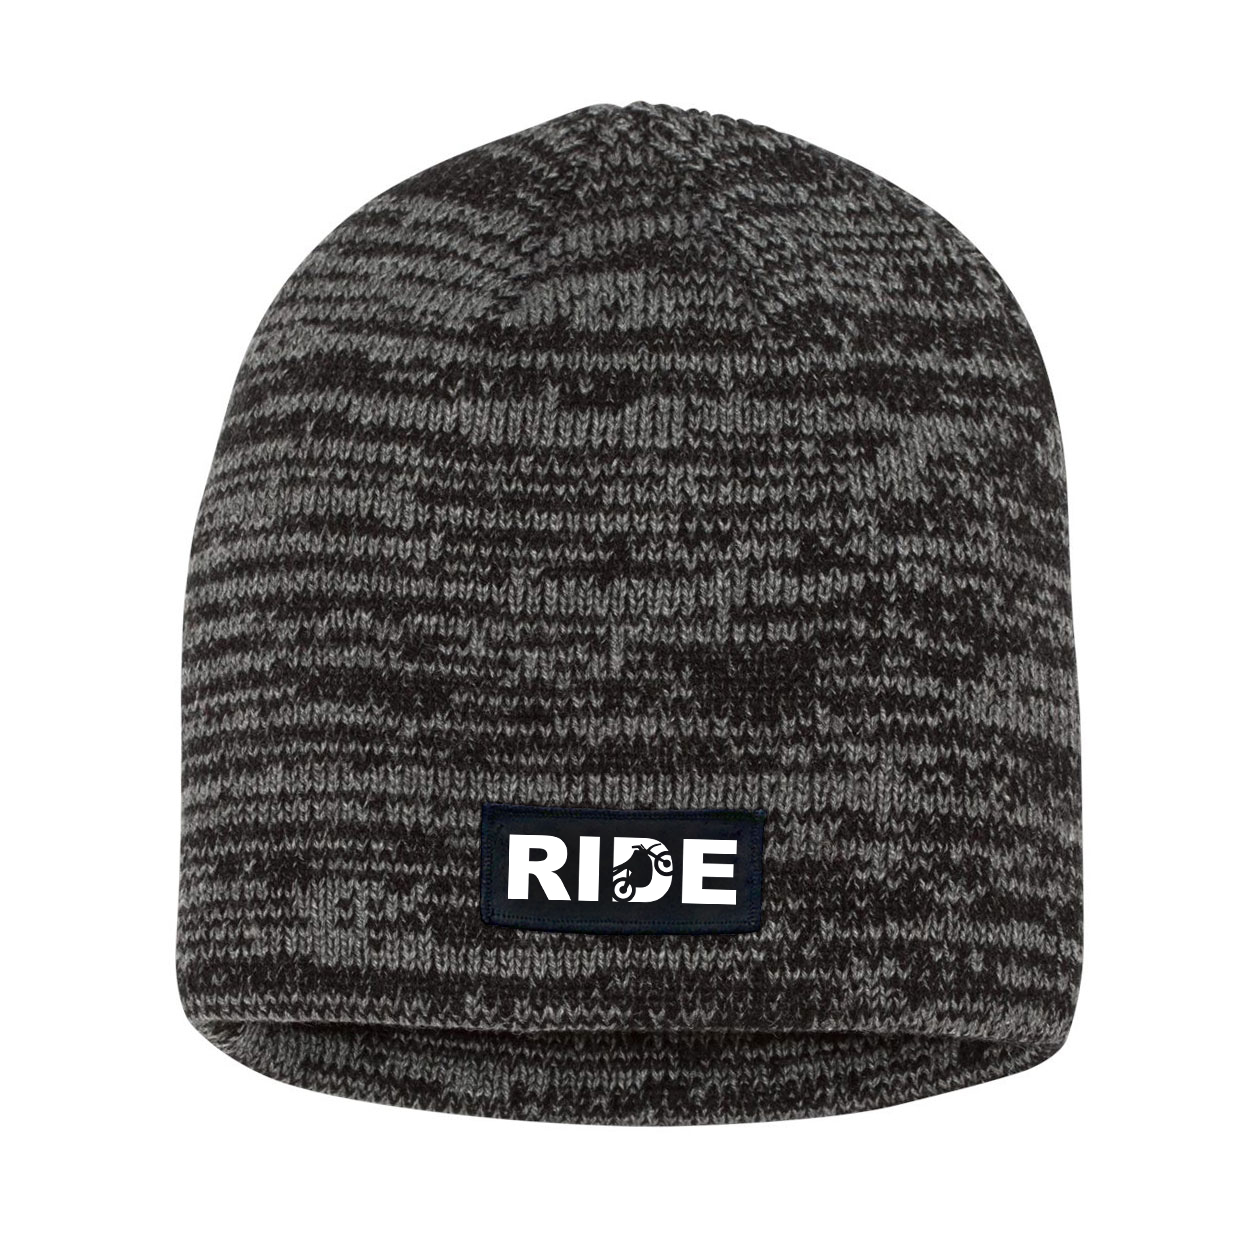 Ride Moto Logo Night Out Woven Patch Skully Marled Knit Beanie Black/Gray (White Logo)